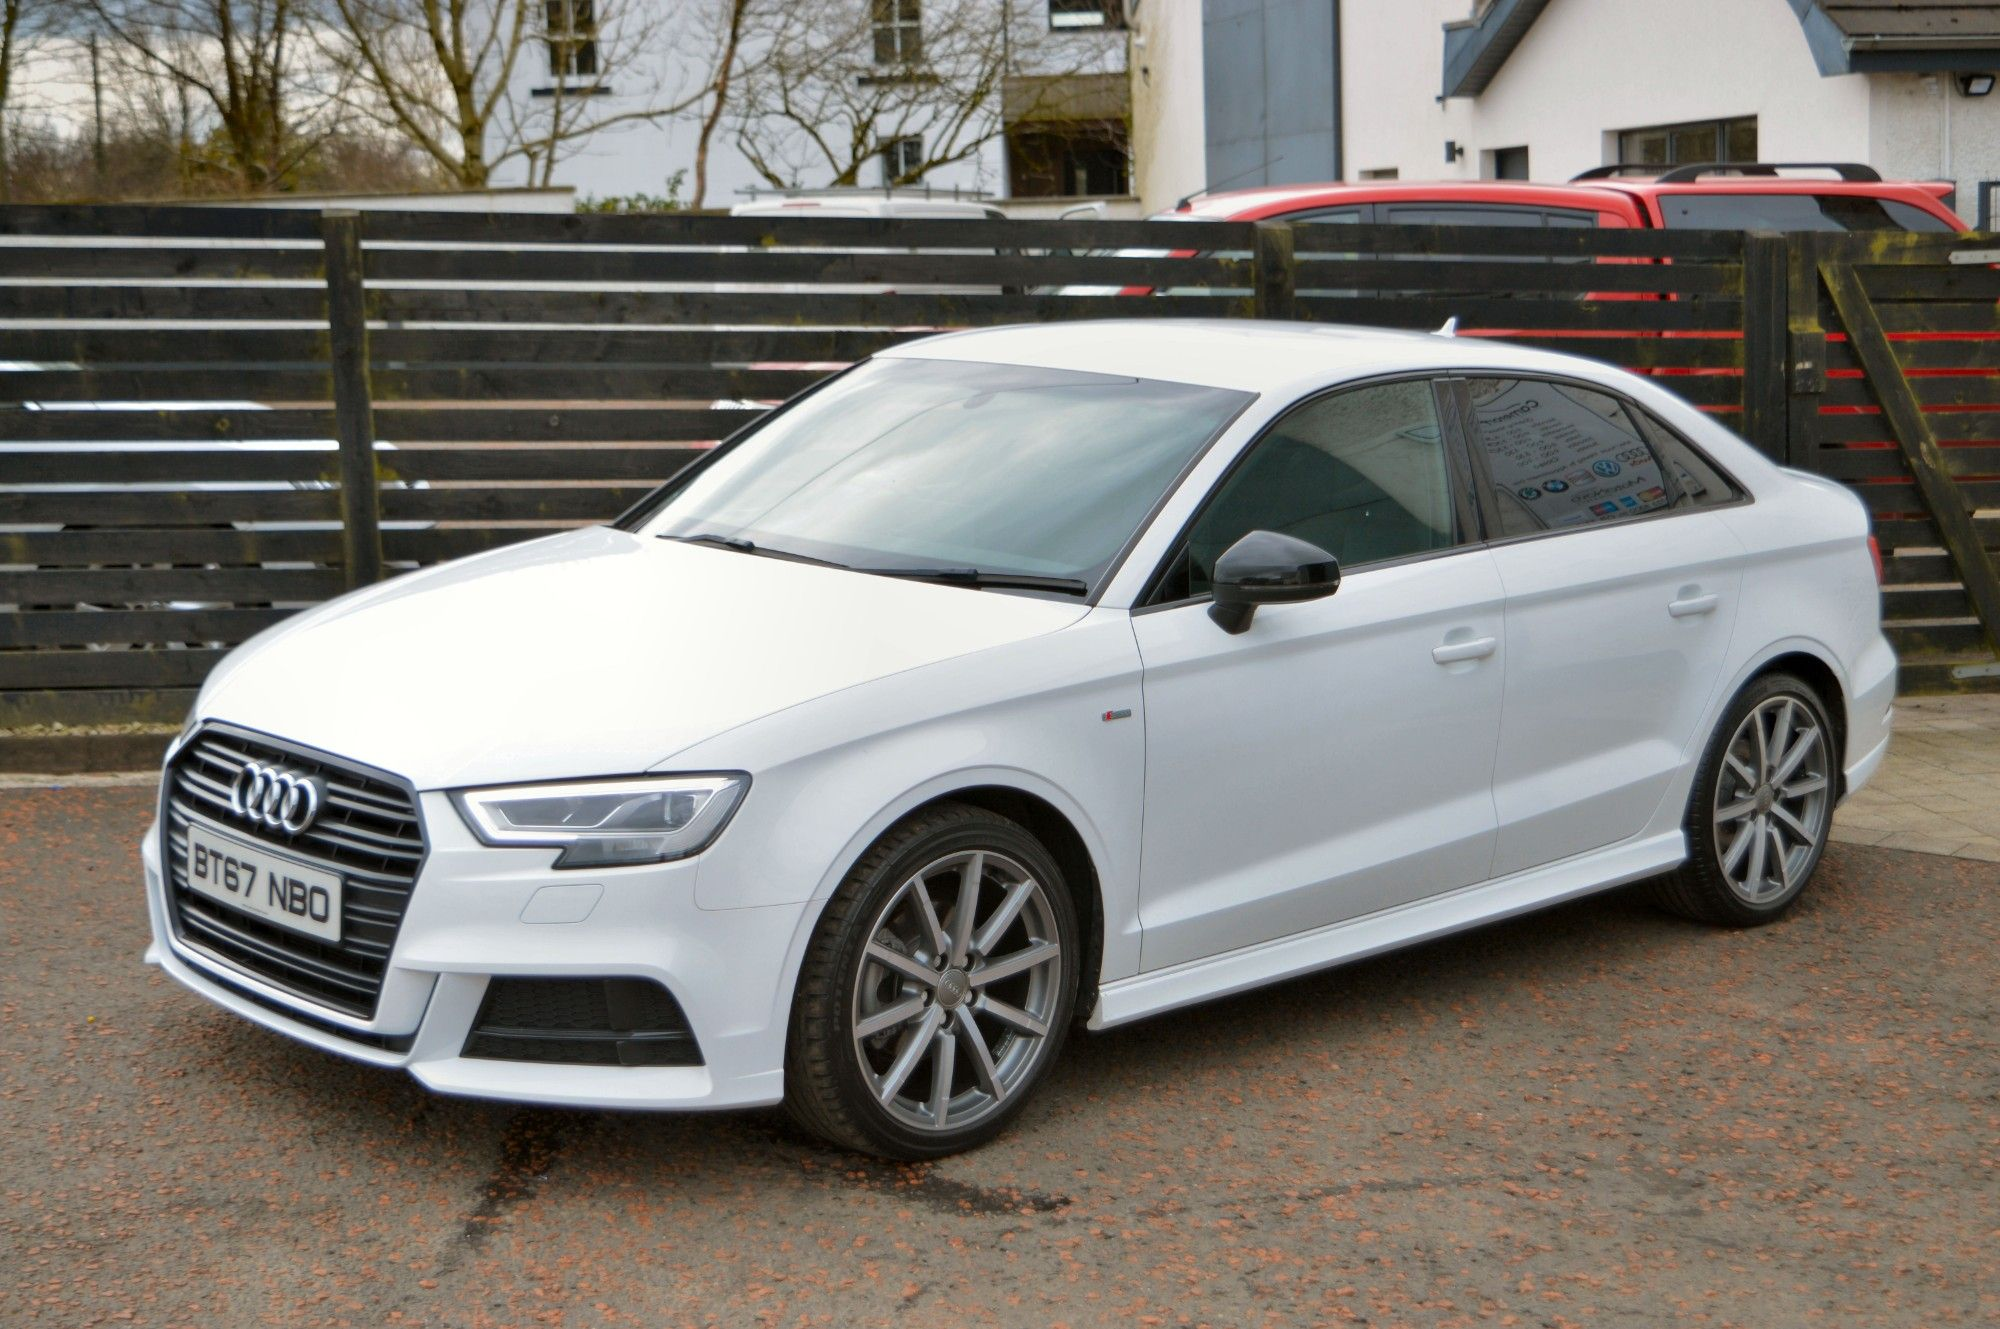 USED 2017 67 AUDI A3 2.0 TDI BLACK EDITION 4d 148 BHP 6 MONTHS RAC WARRANTY FREE + 12 MONTHS ROAD SIDE RECOVERY!